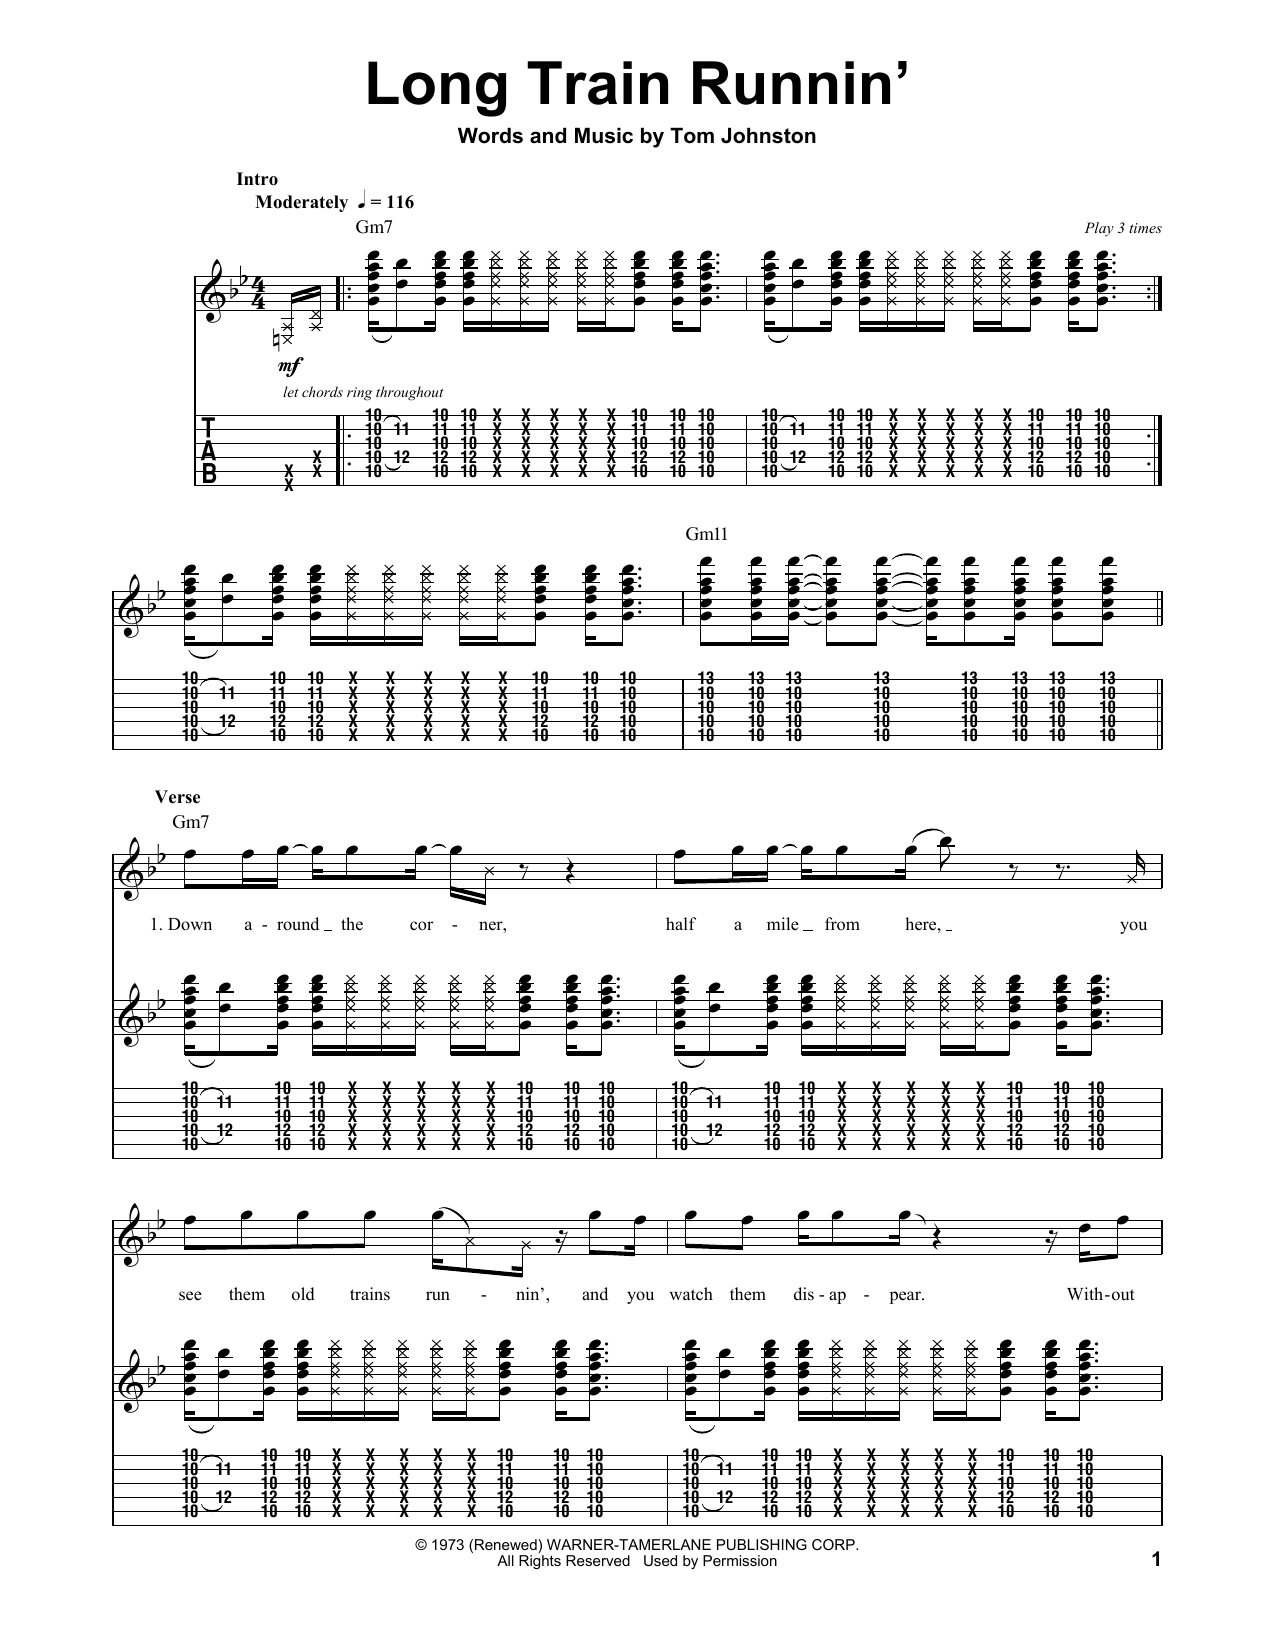 Long Train Runnin The Doobie Brothers Guitar Tab Play Along